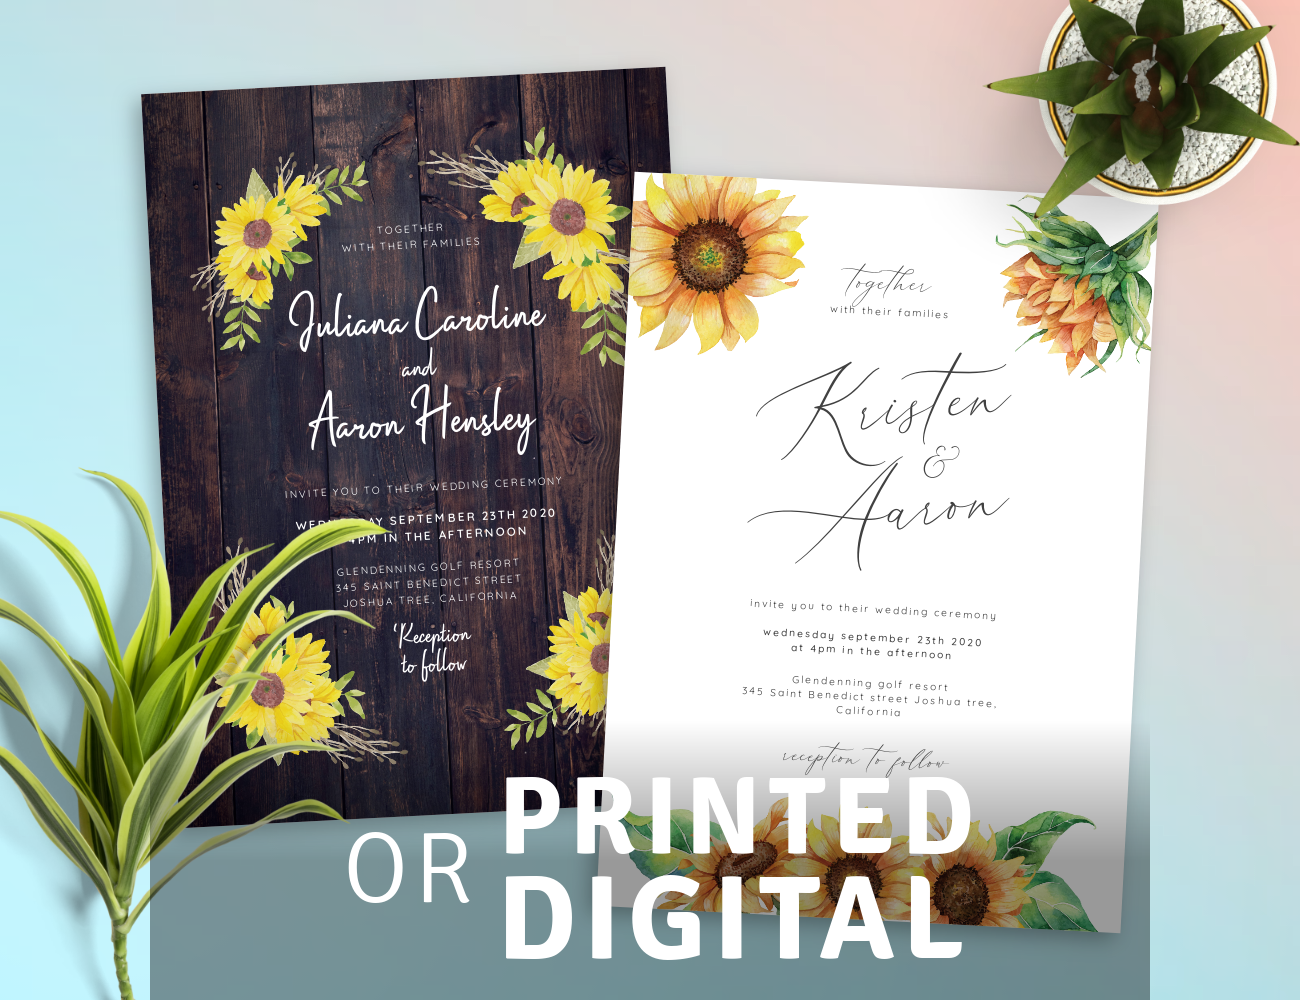 Custom Rustic Wedding Invitations Digital or Printed